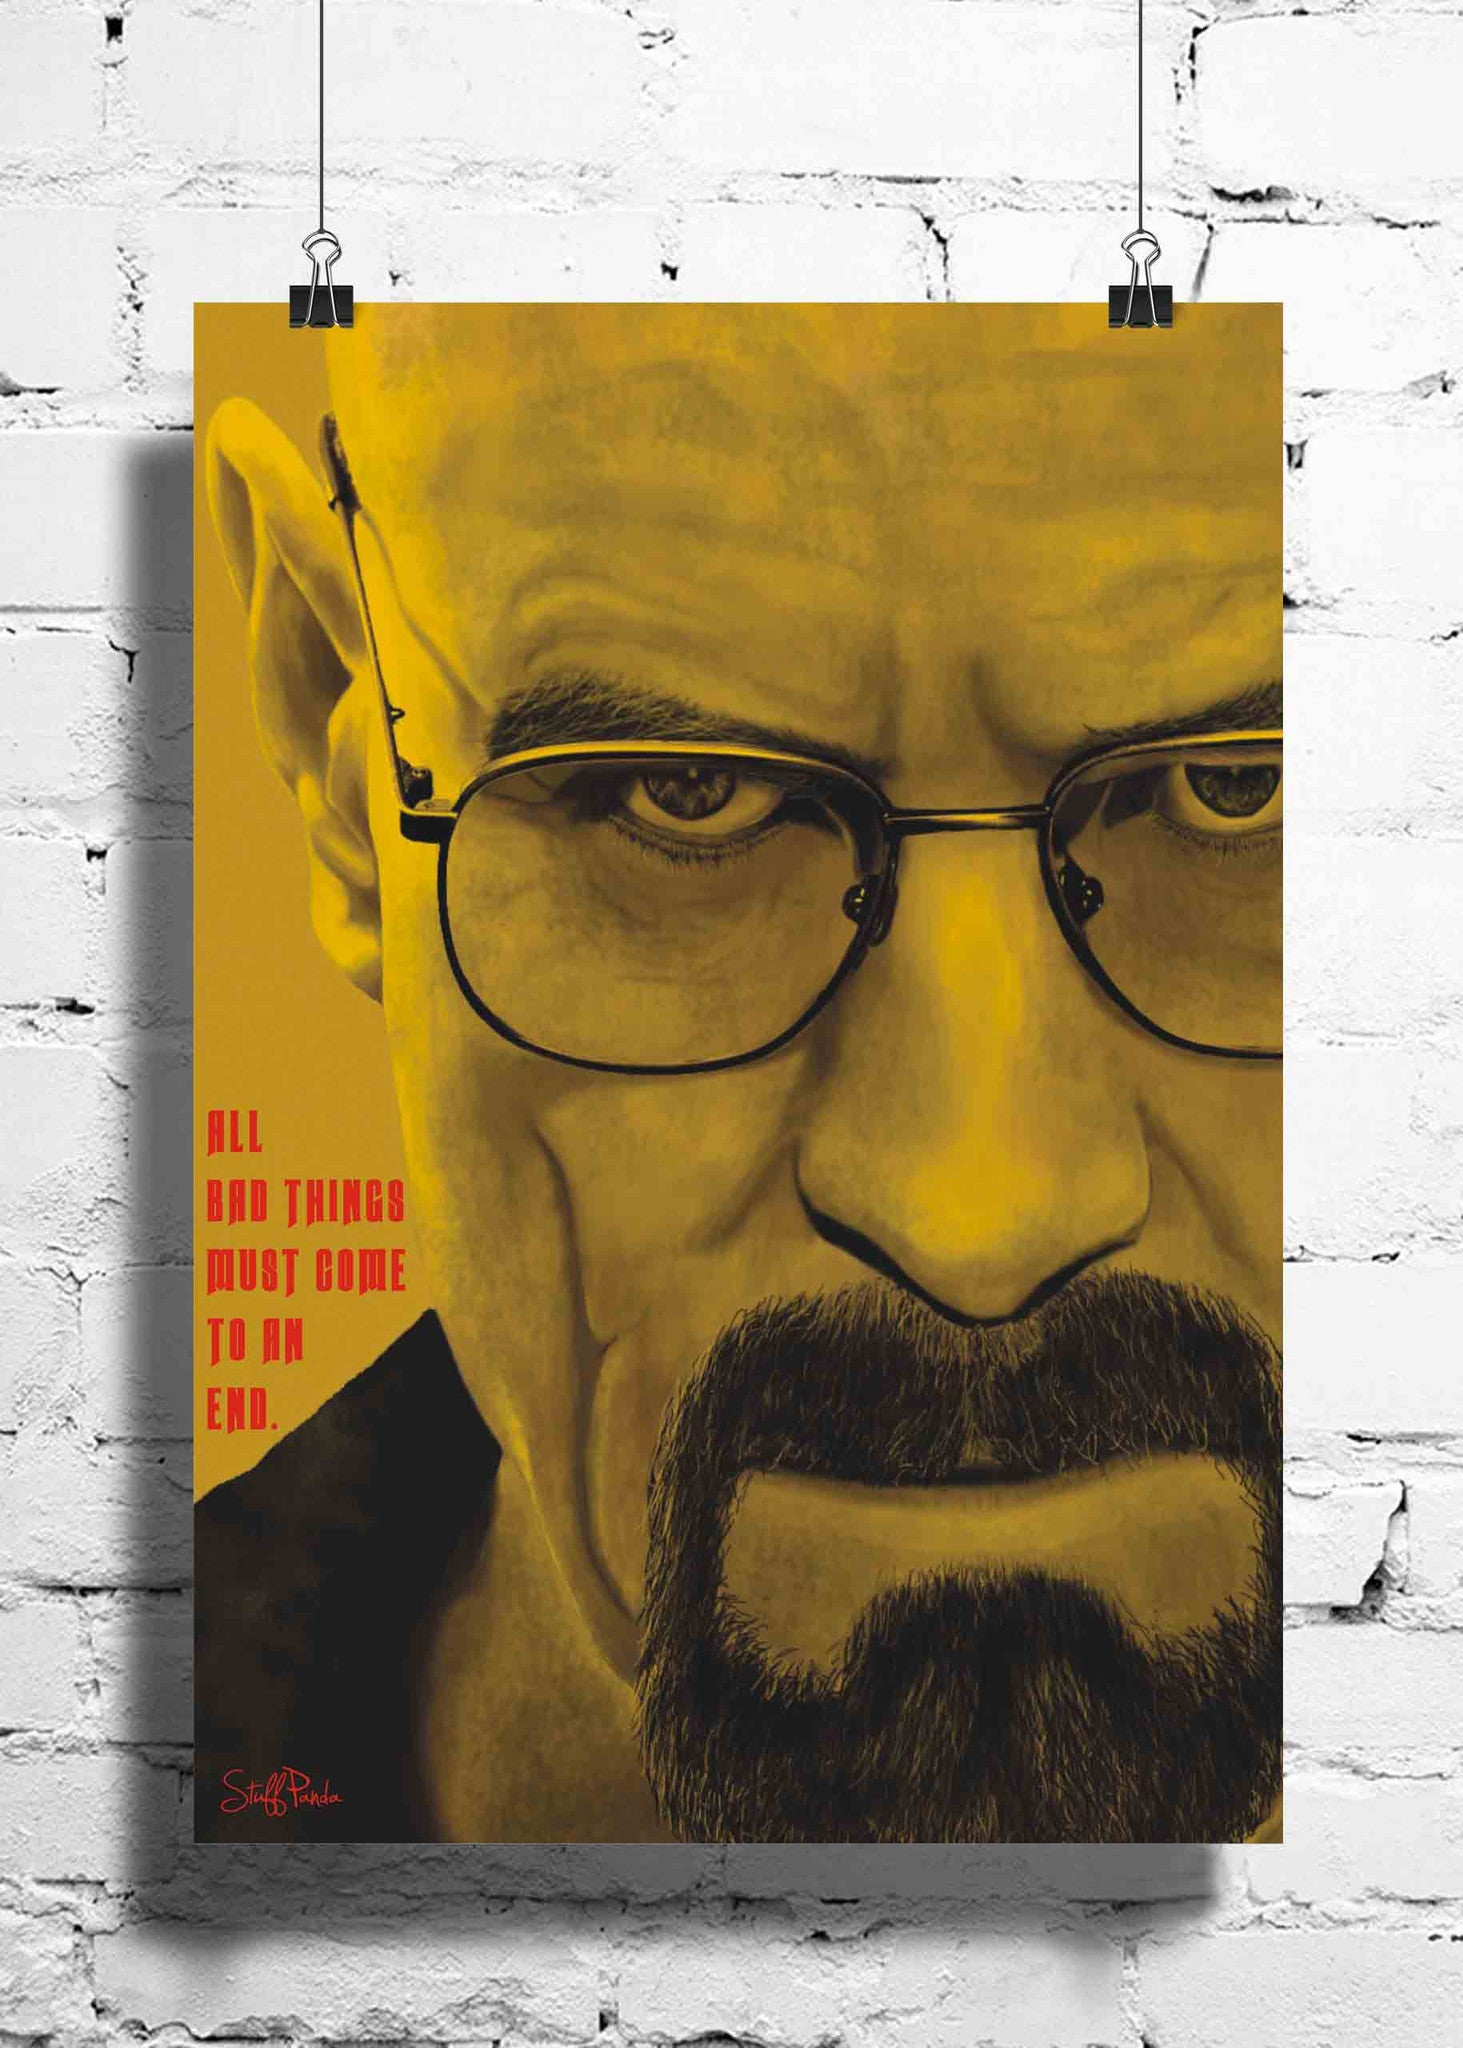 Cool funky breaking bad wall posters art prints stickers decals cool funky breaking bad wall posters art prints stickers decals yellow face stuffpanda amipublicfo Choice Image